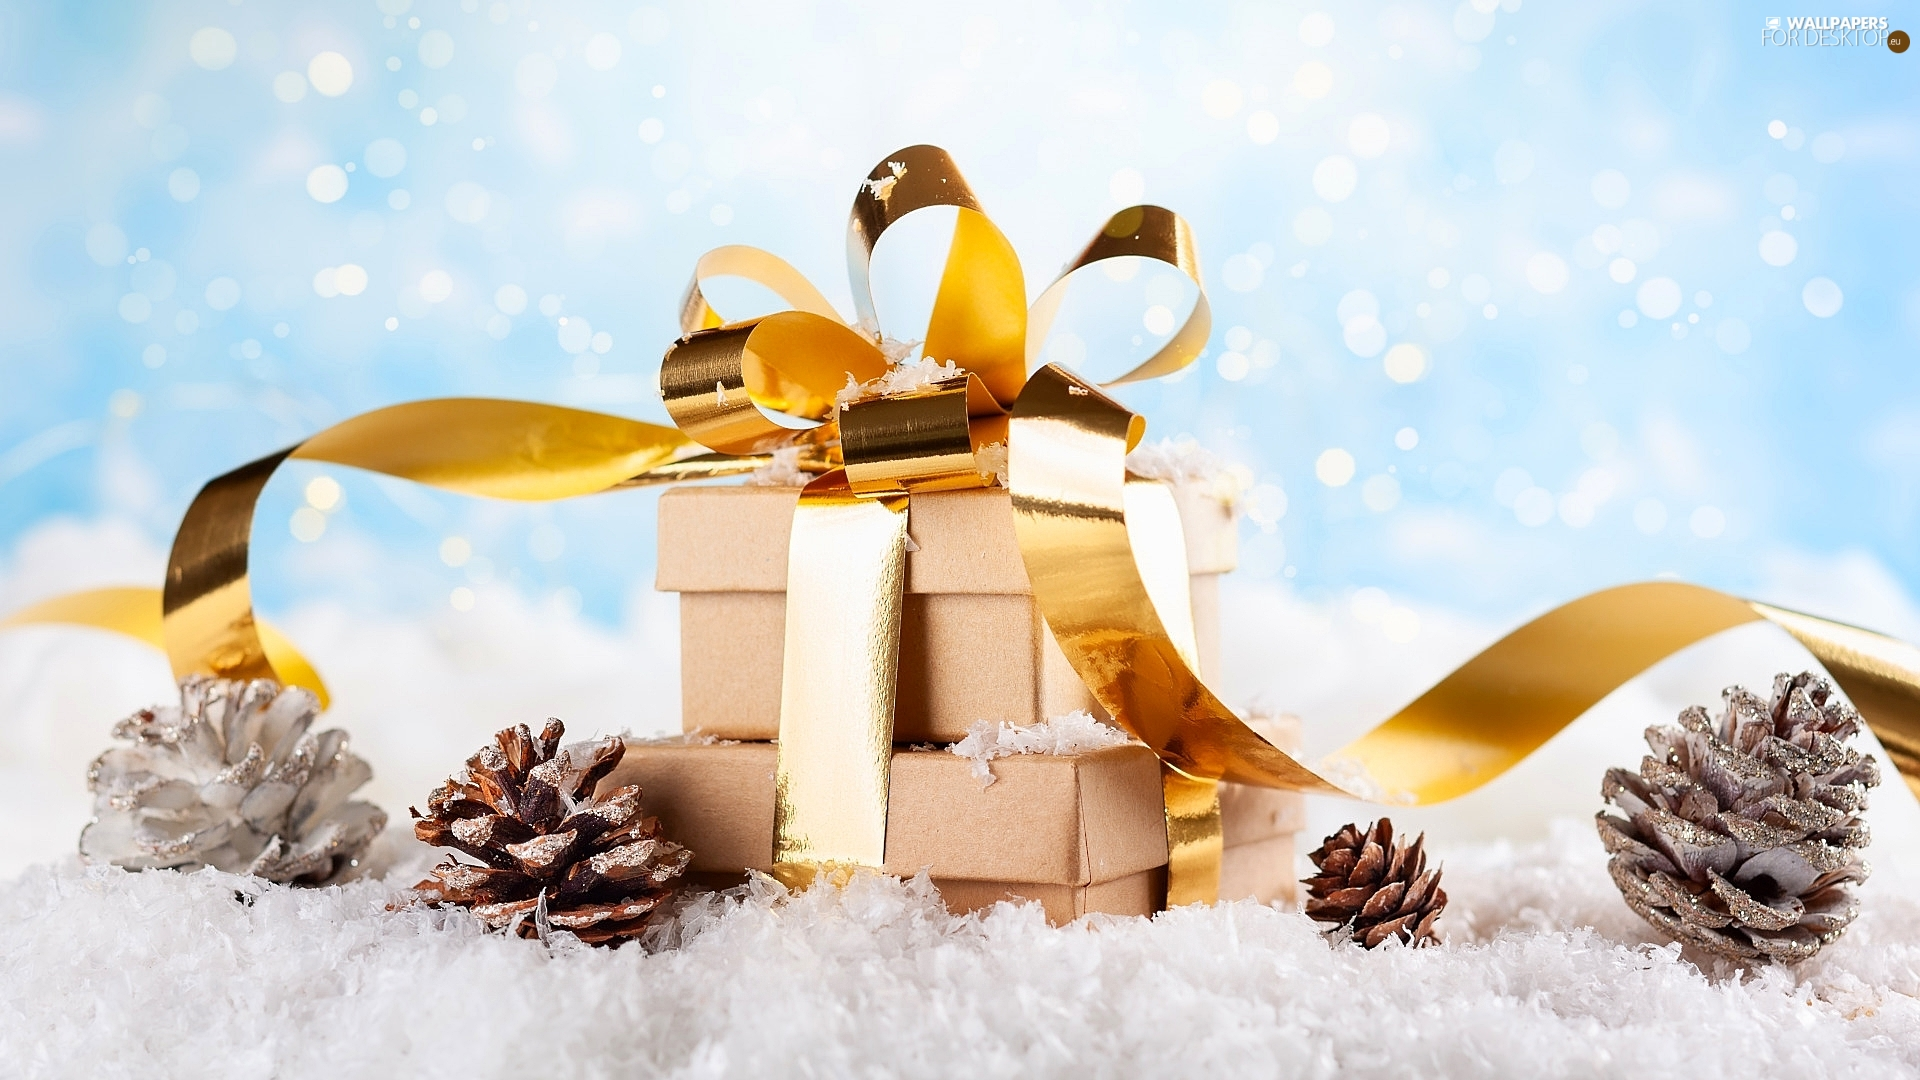 ribbon, gifts, snow, Christmas, cones, Golden automobile